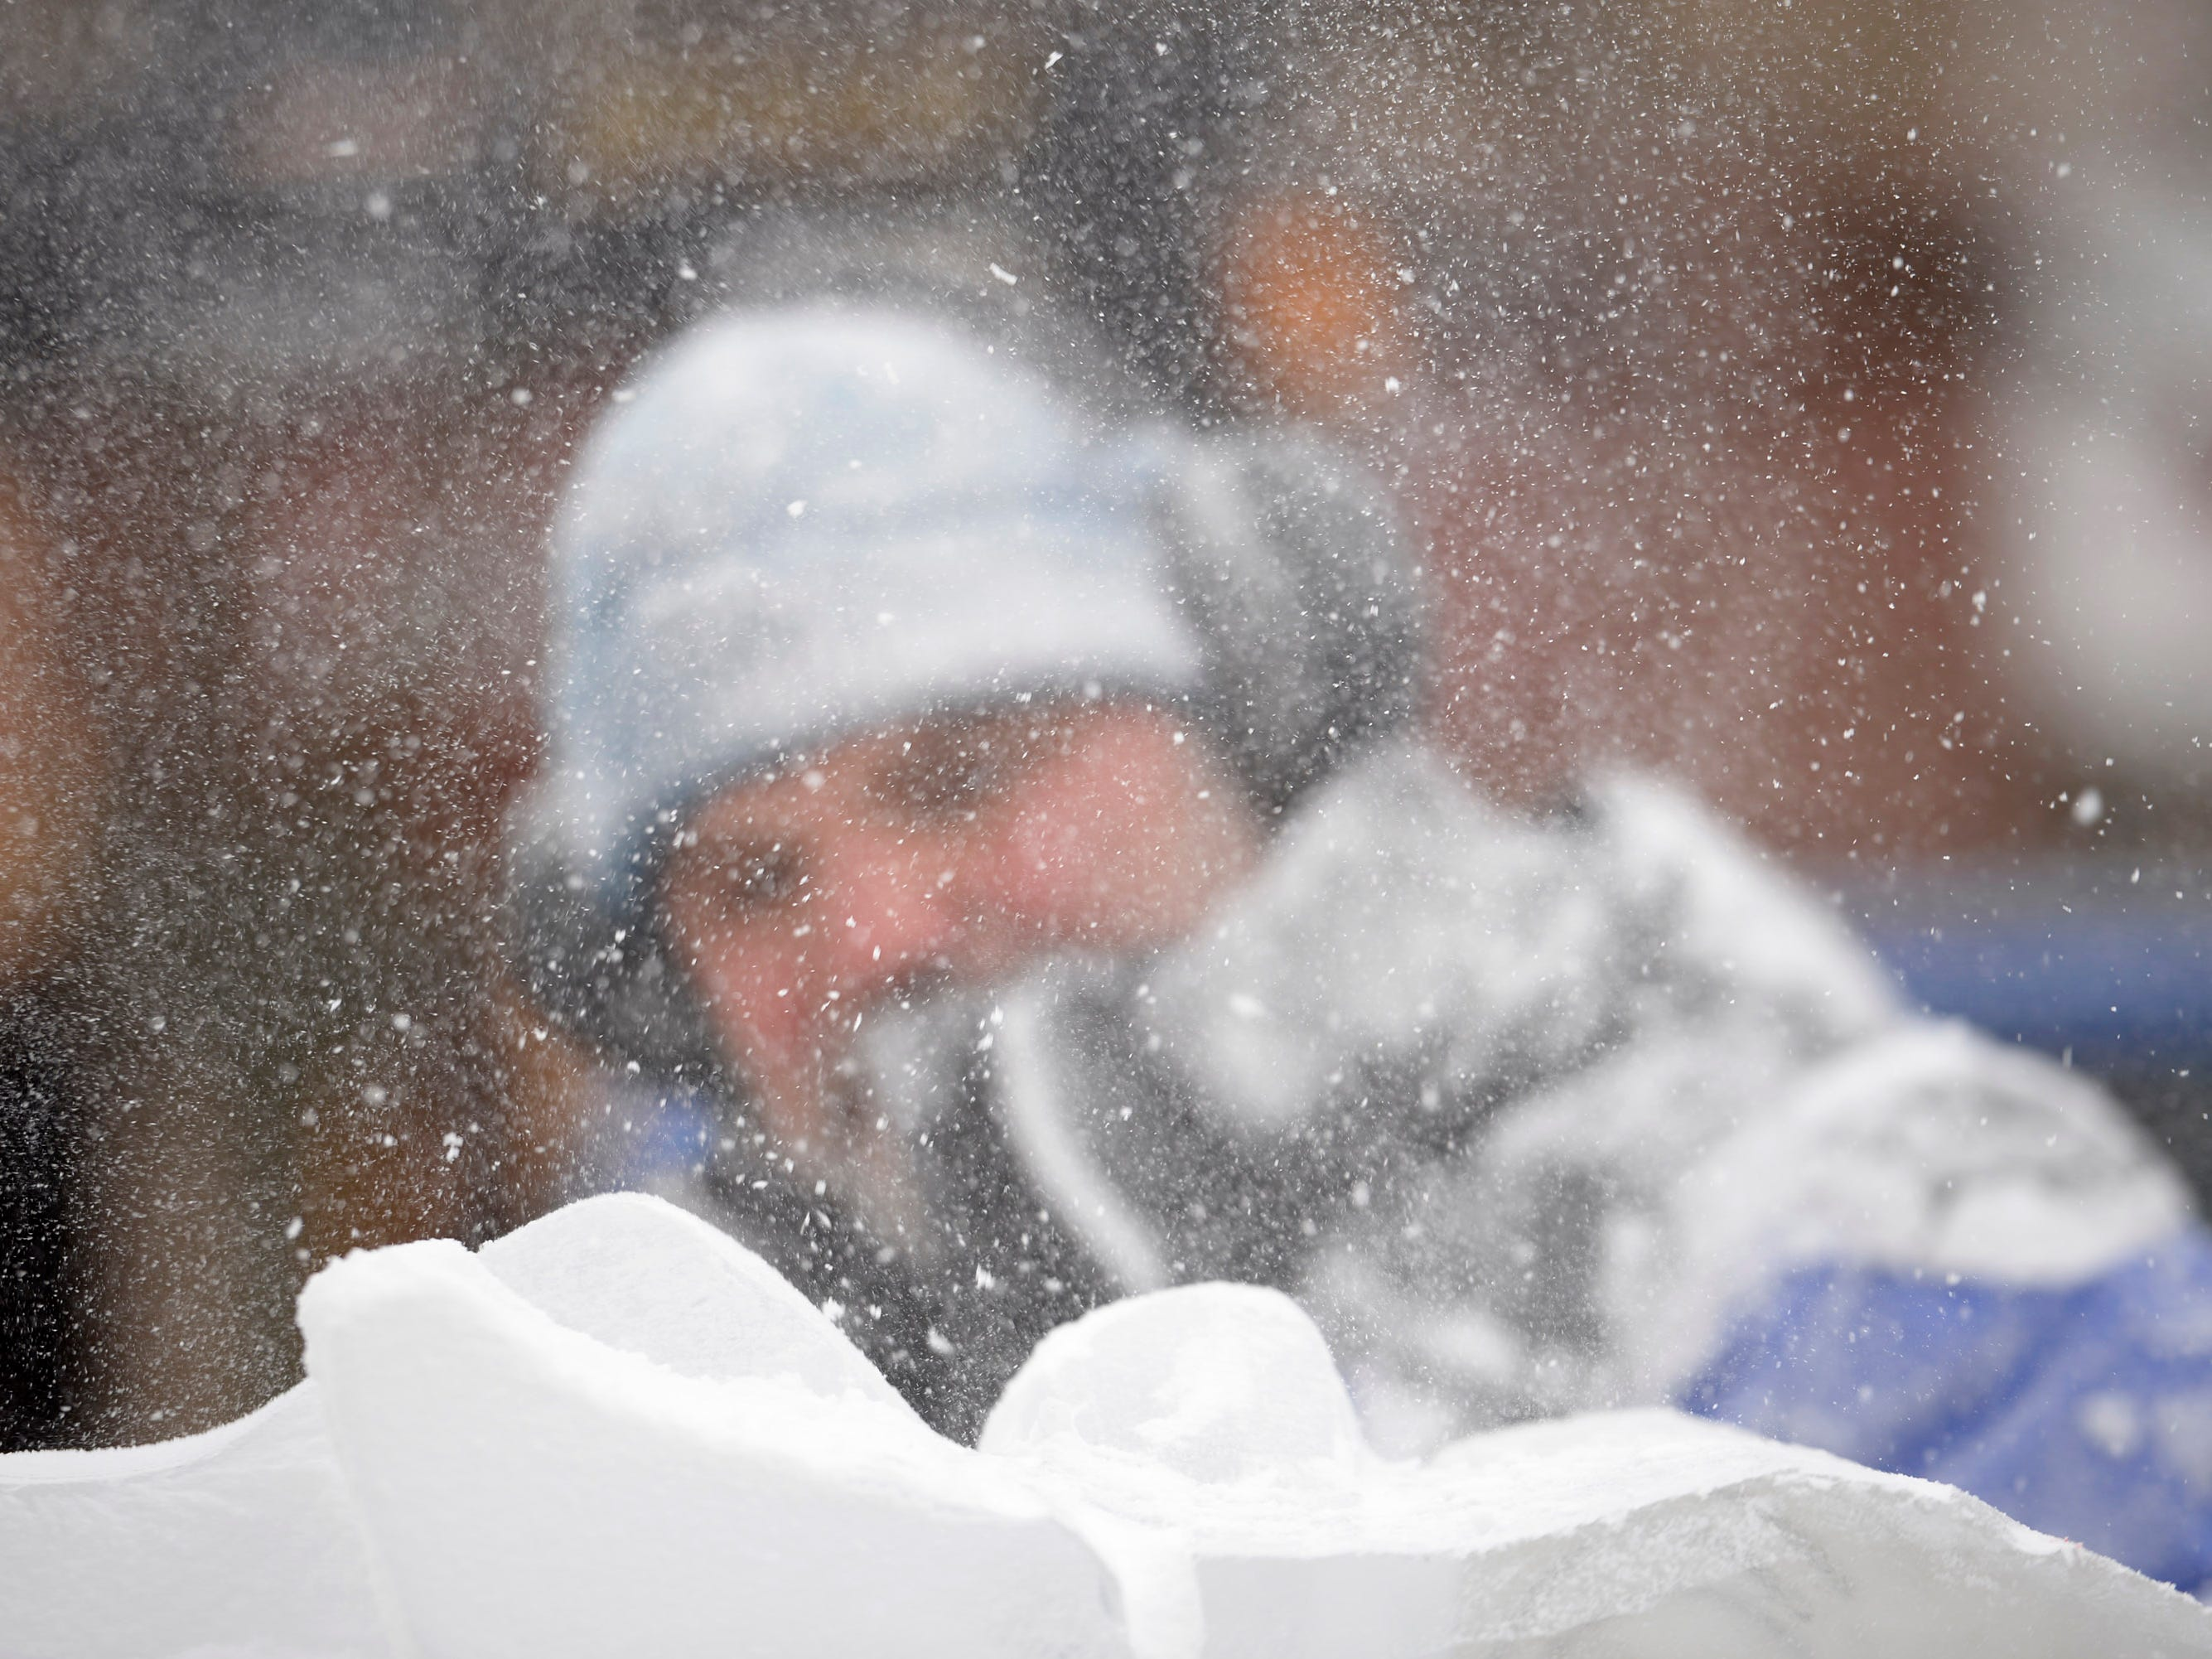 Aaron Costic works on an ice carving at the Plymouth Ice Festival that runs Jan. 11-13.